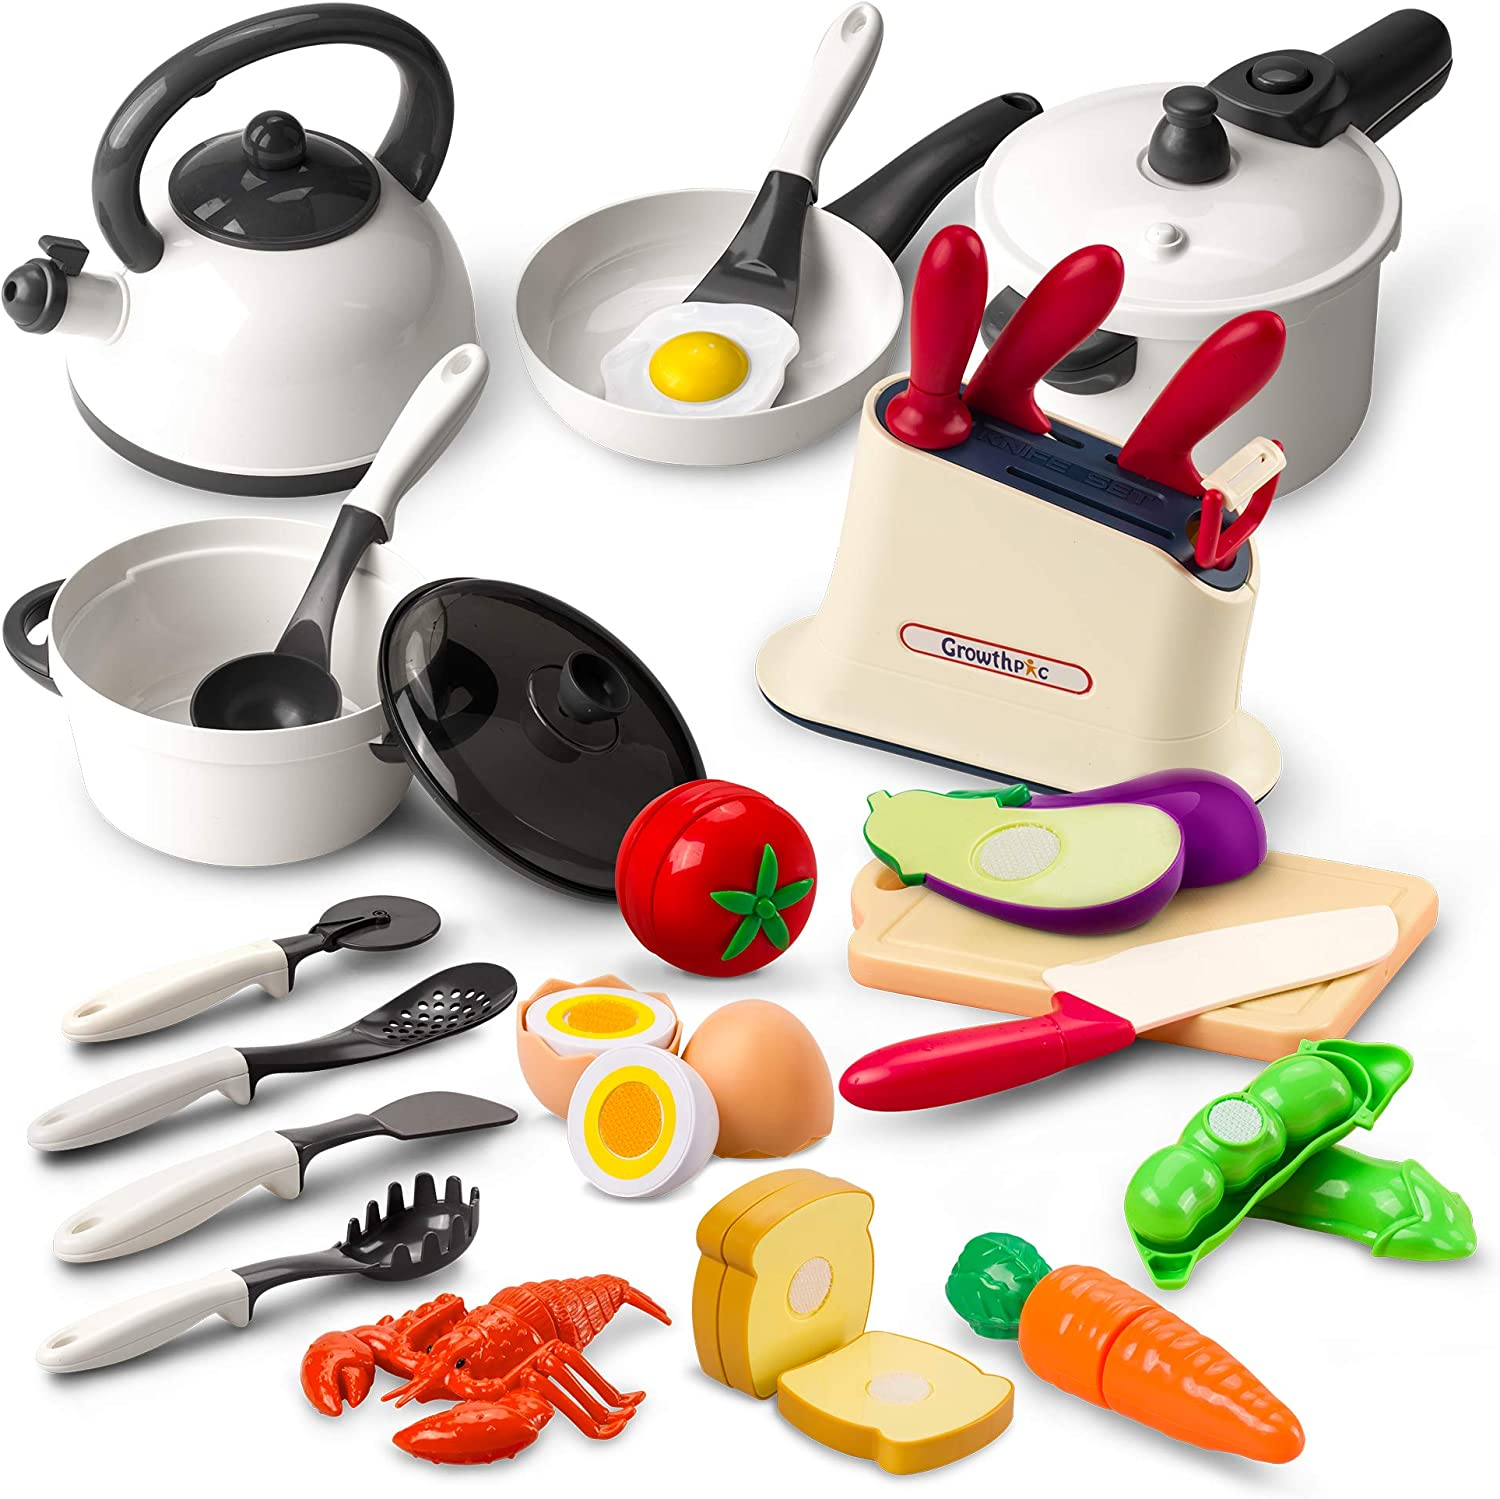 GrowthPic Kids Play Kitchen Accessories, Toy Cookware Set Pots and Pans Cooking Utensils Playset, Cutting Play Food for Toddler Kids Boys Girls